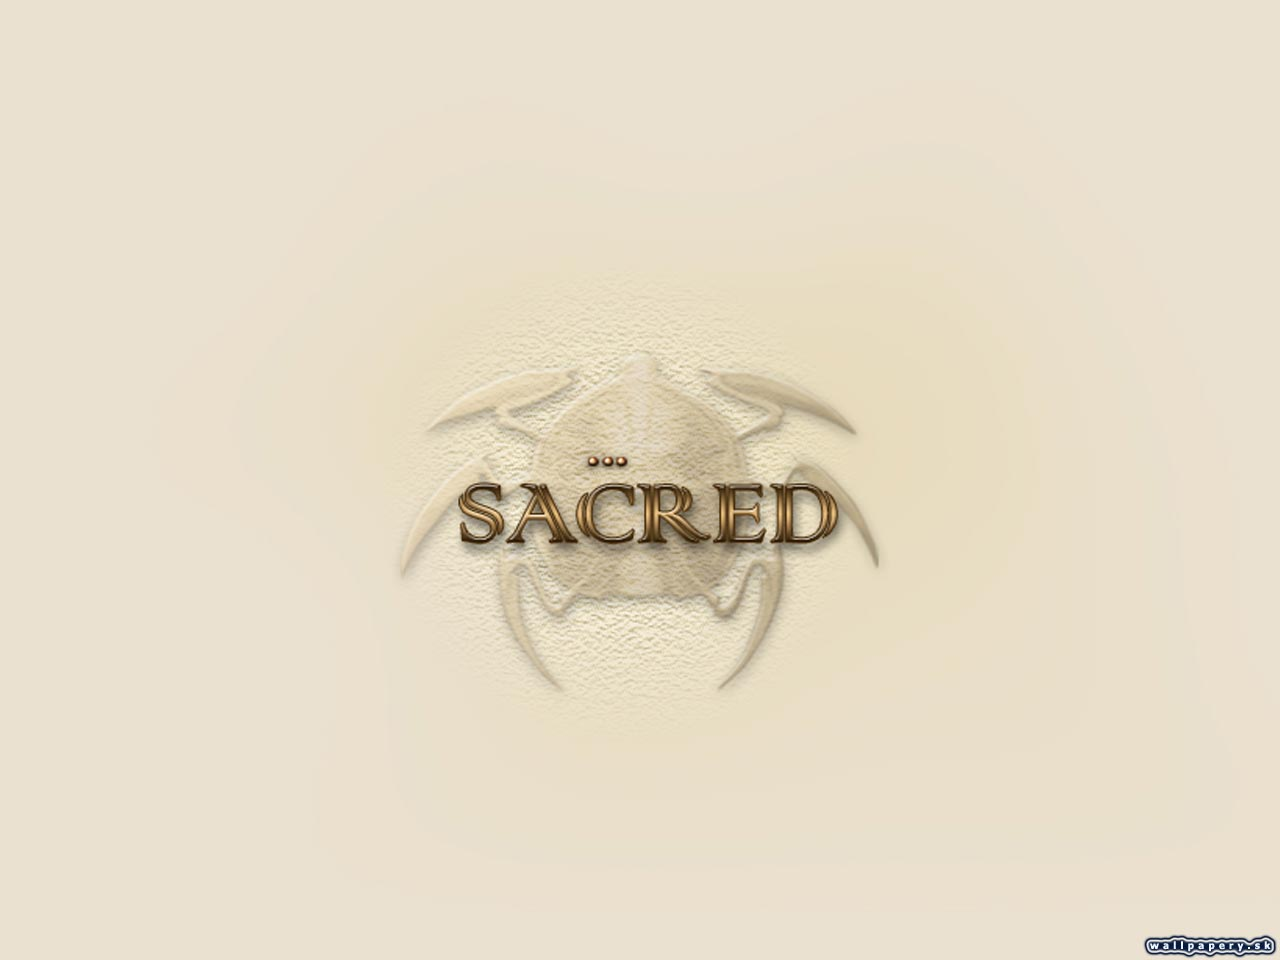 Sacred - wallpaper 14